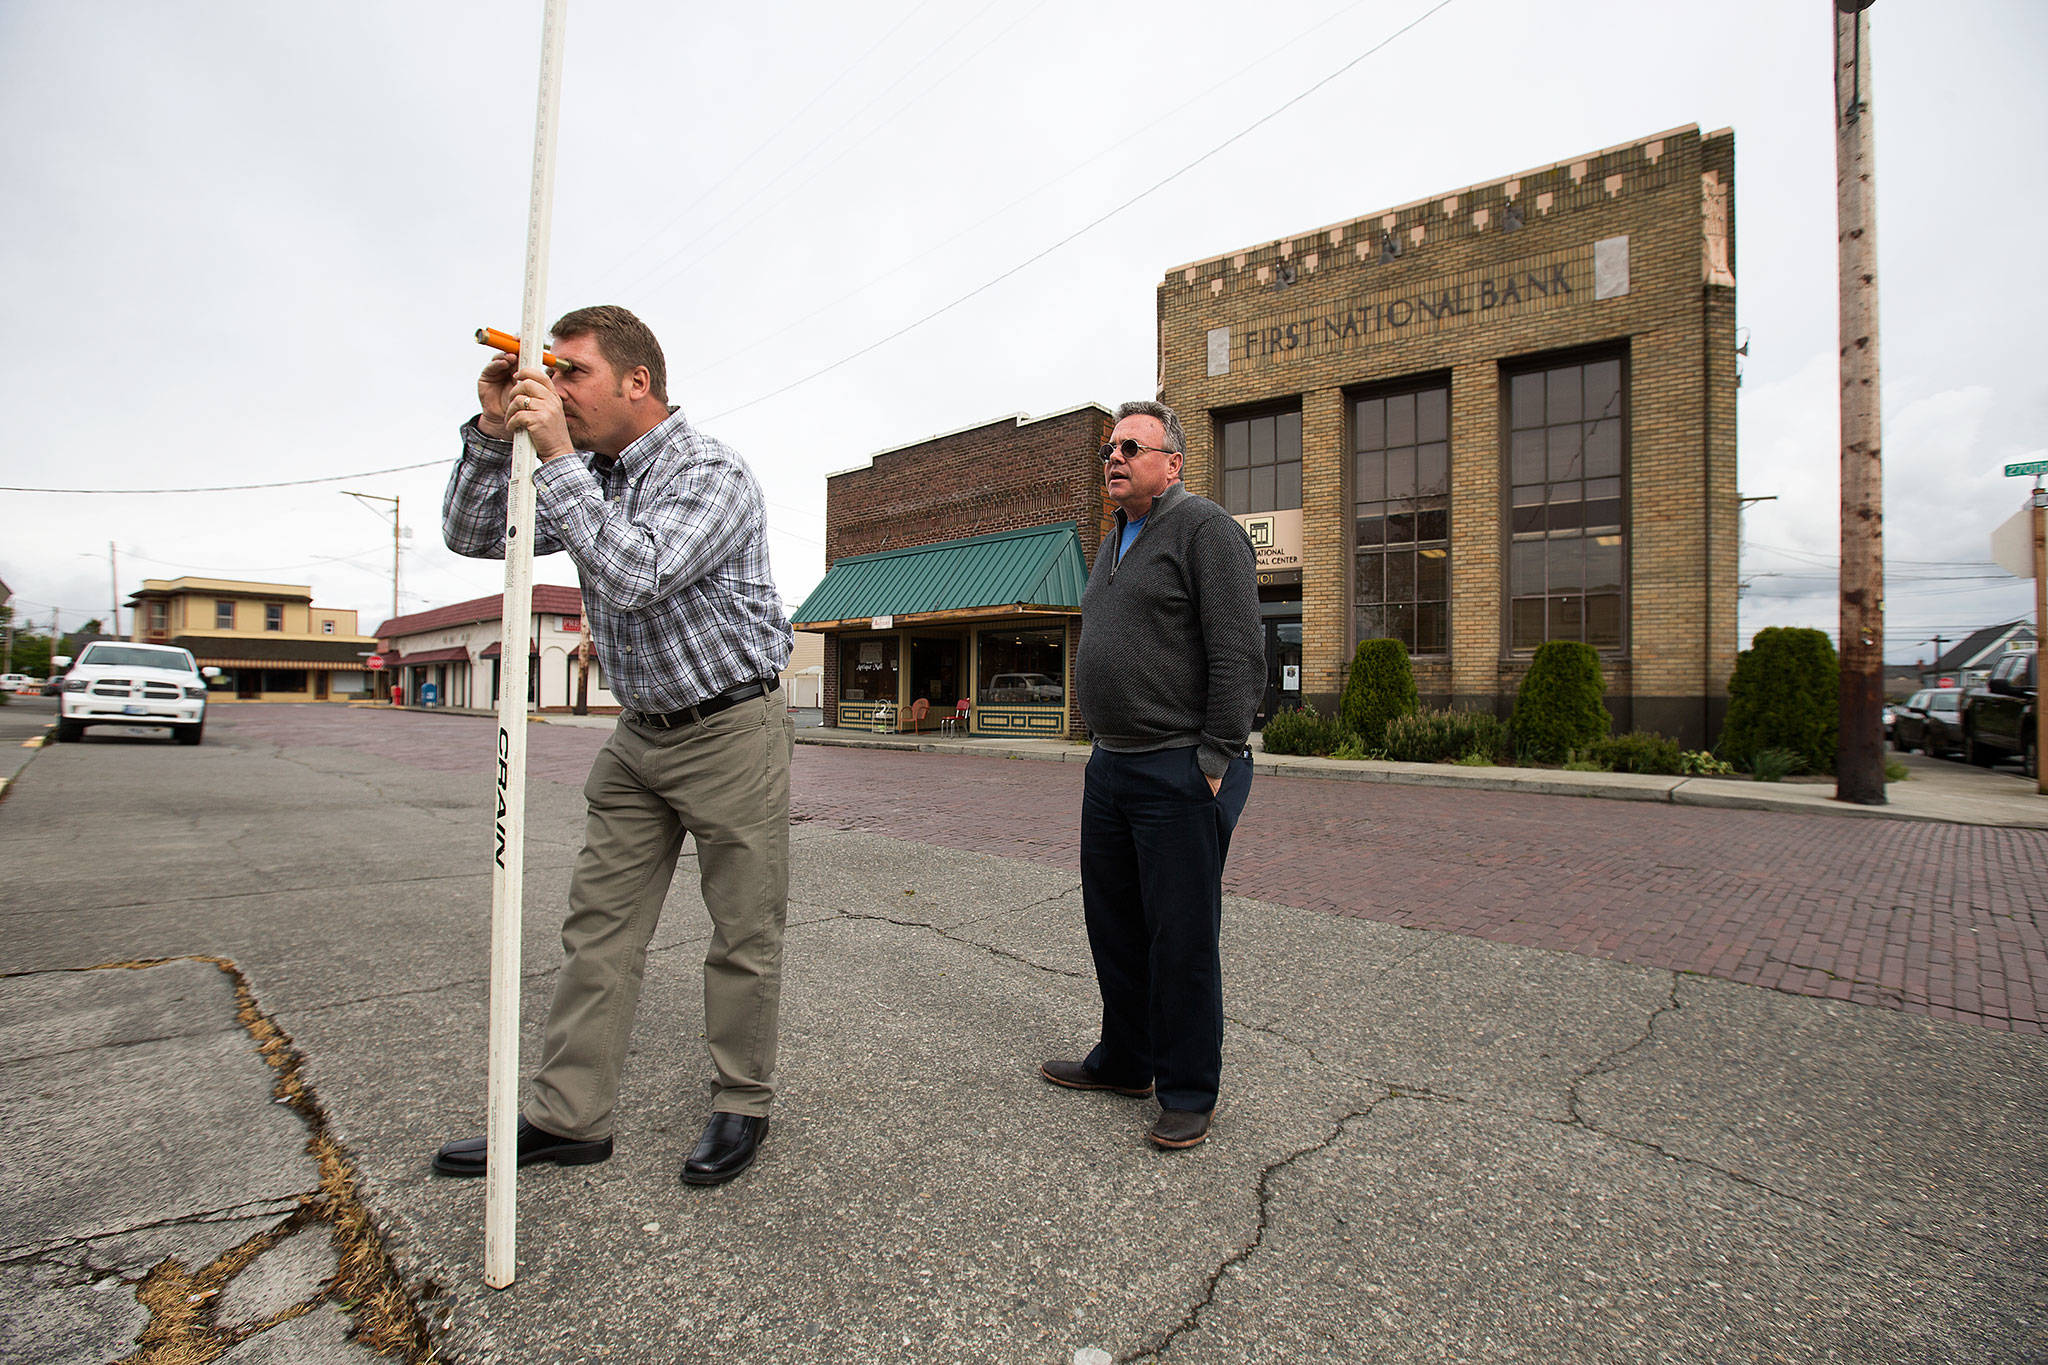 Landscape Architecture's Scott Lankford teaches Lee Ohlde how to shoot elevation measurements along 270th St. NW, one of many areas of Stanwood that lie in the flood zone, on Monday, May 15, 2017 in Stanwood, Wa. (Andy Bronson / The Herald)